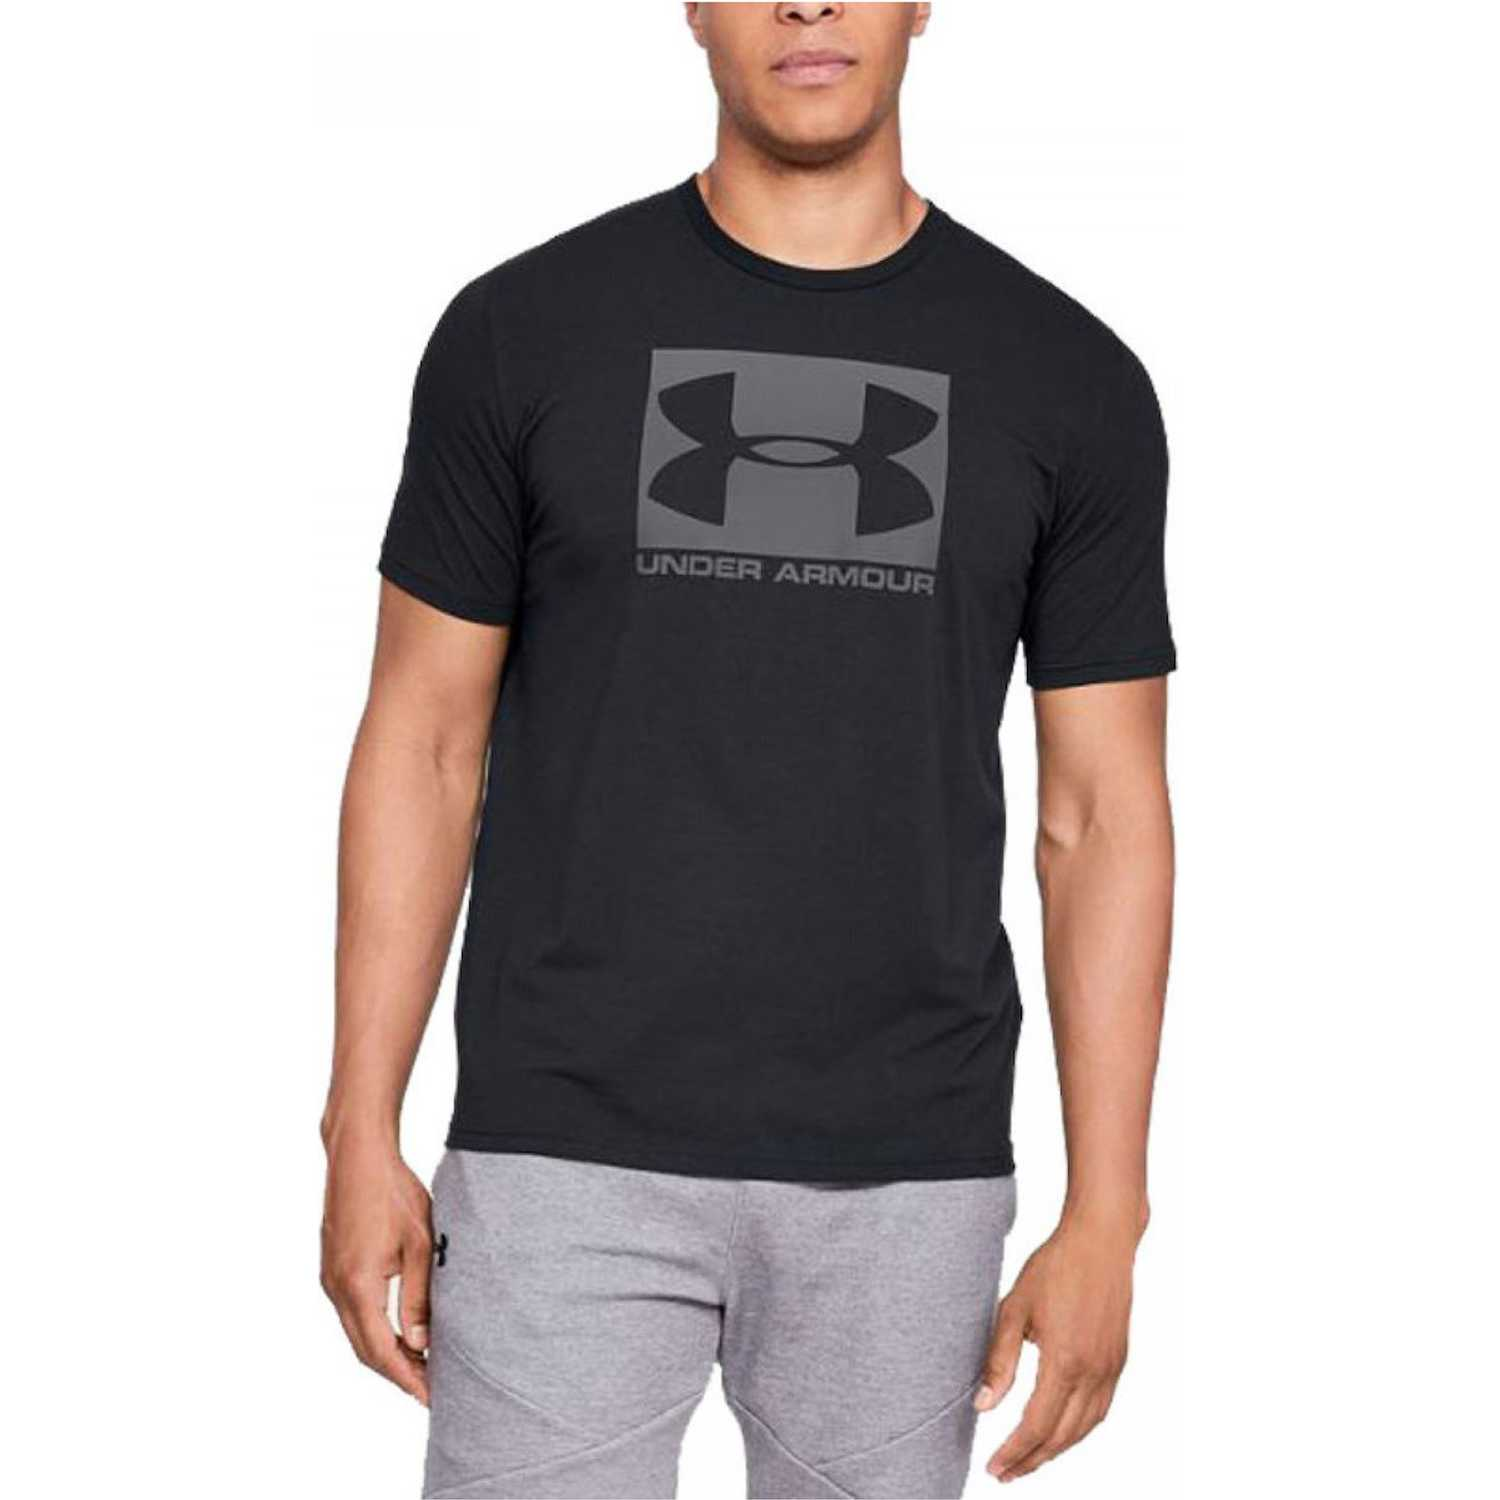 1ad381066ed05 Polo de Hombre Under Armour Negro ua boxed sportstyle ss-blk ...